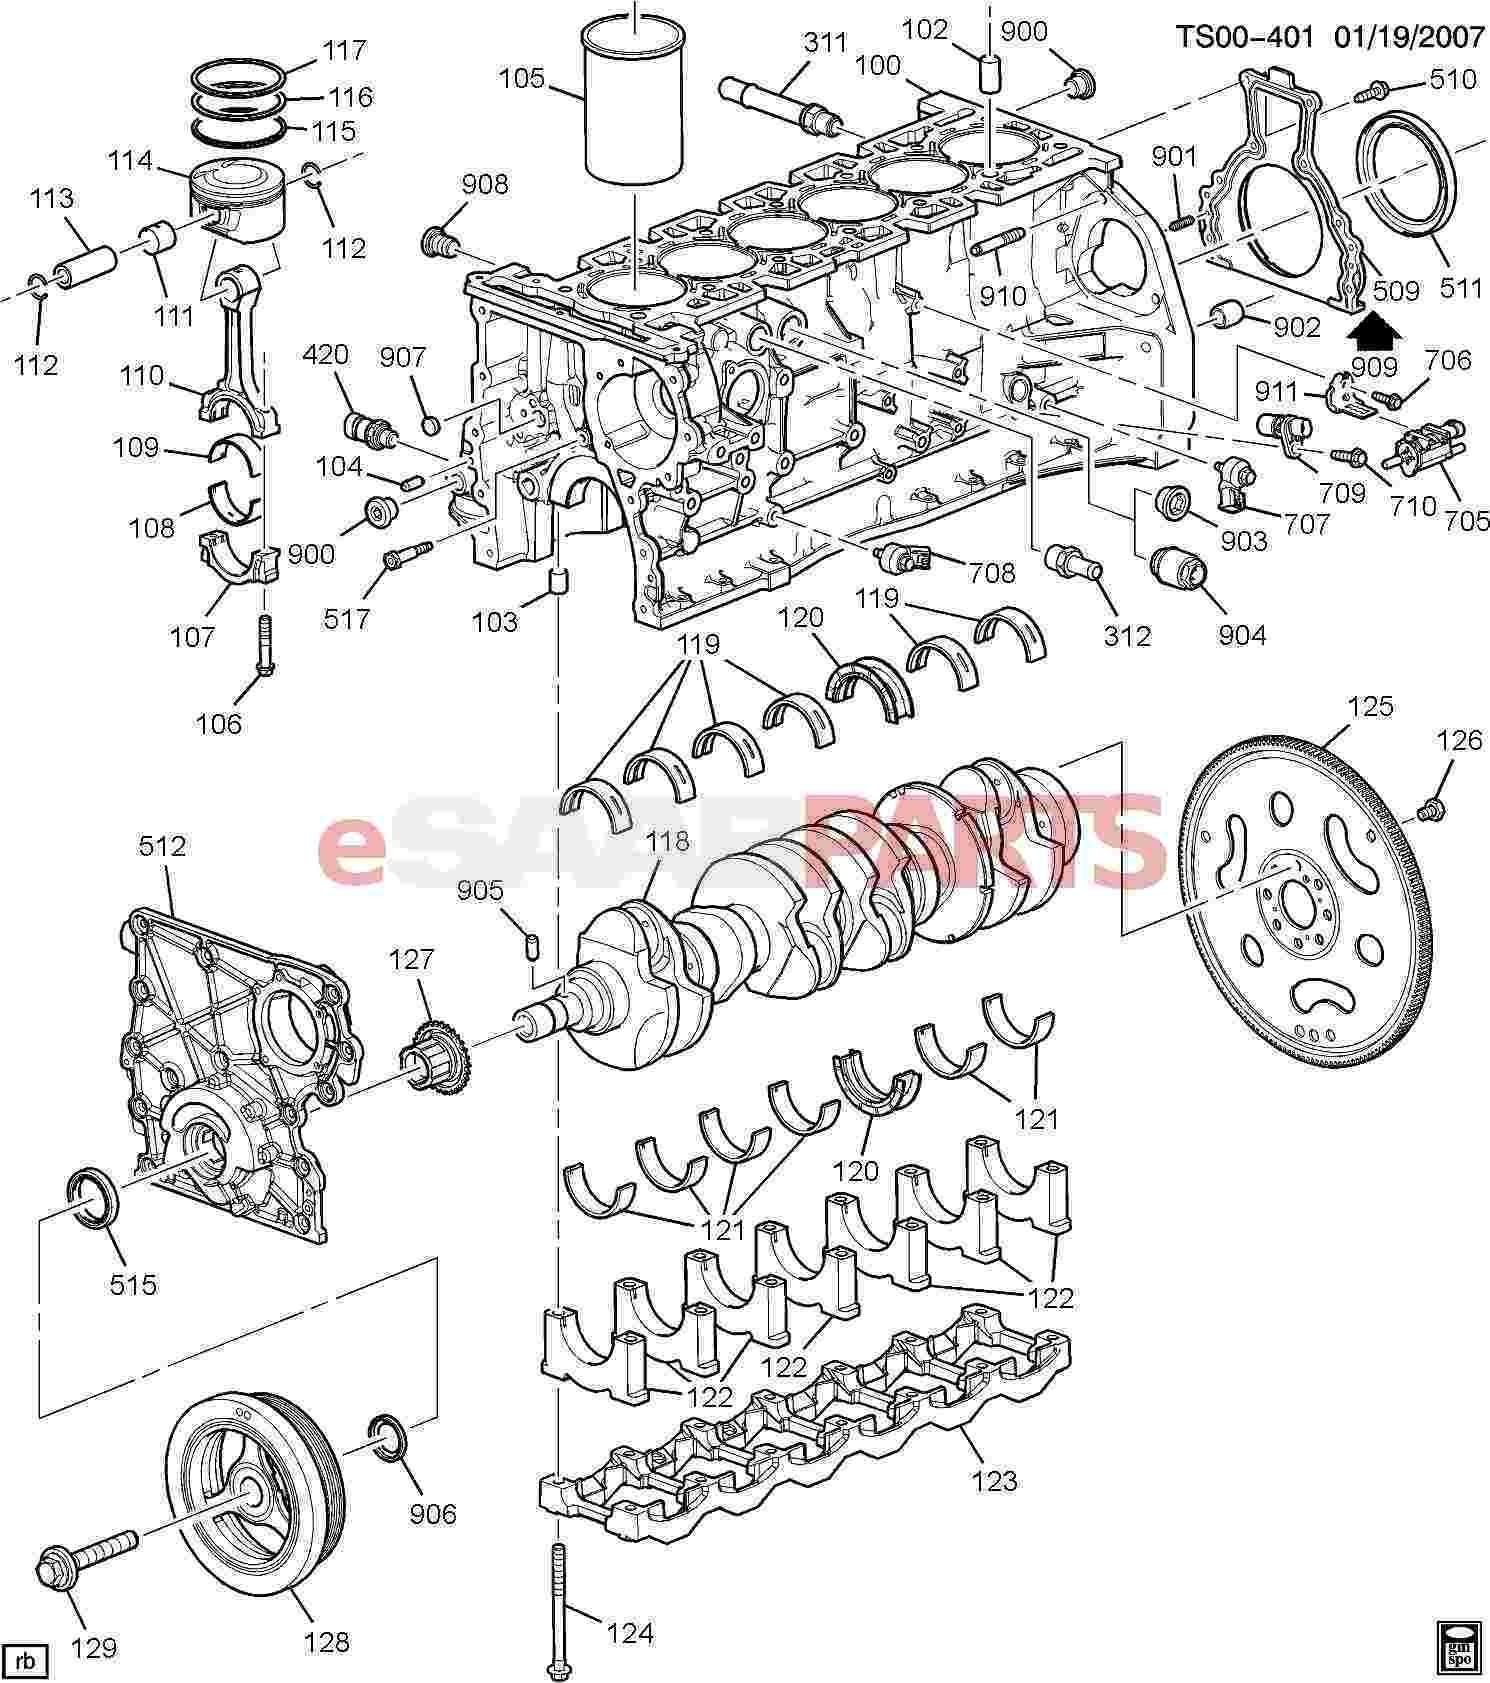 2001 Toyota Camry Engine Diagram Supra Saab 9 5 Wiring Diagrams Instructions Of